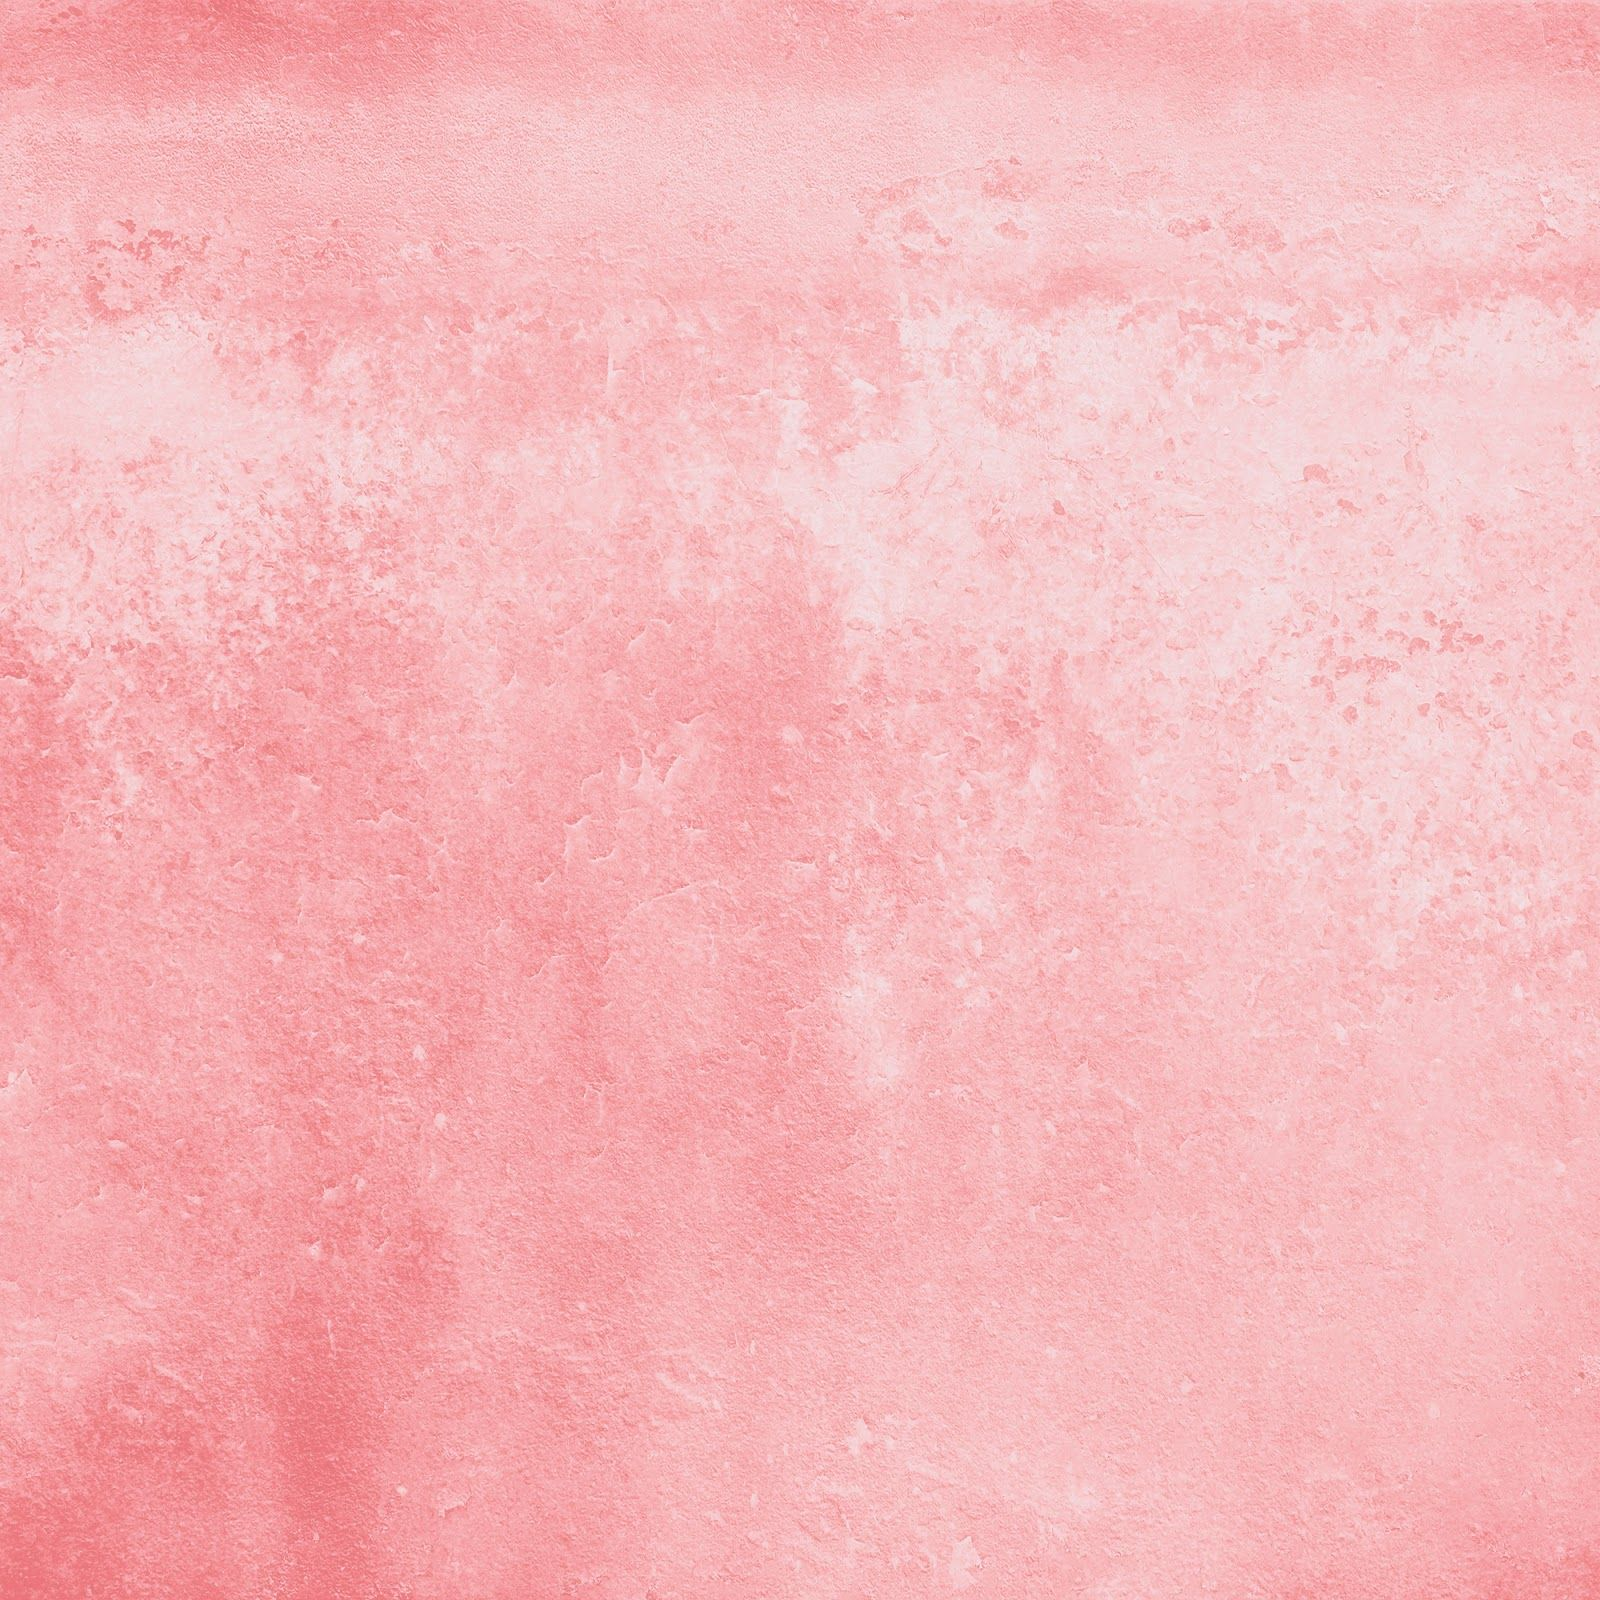 Pink Grunge Aesthetic Wallpapers Top Free Pink Grunge Aesthetic Backgrounds Wallpaperaccess > minimal design and smooth affects. pink grunge aesthetic wallpapers top